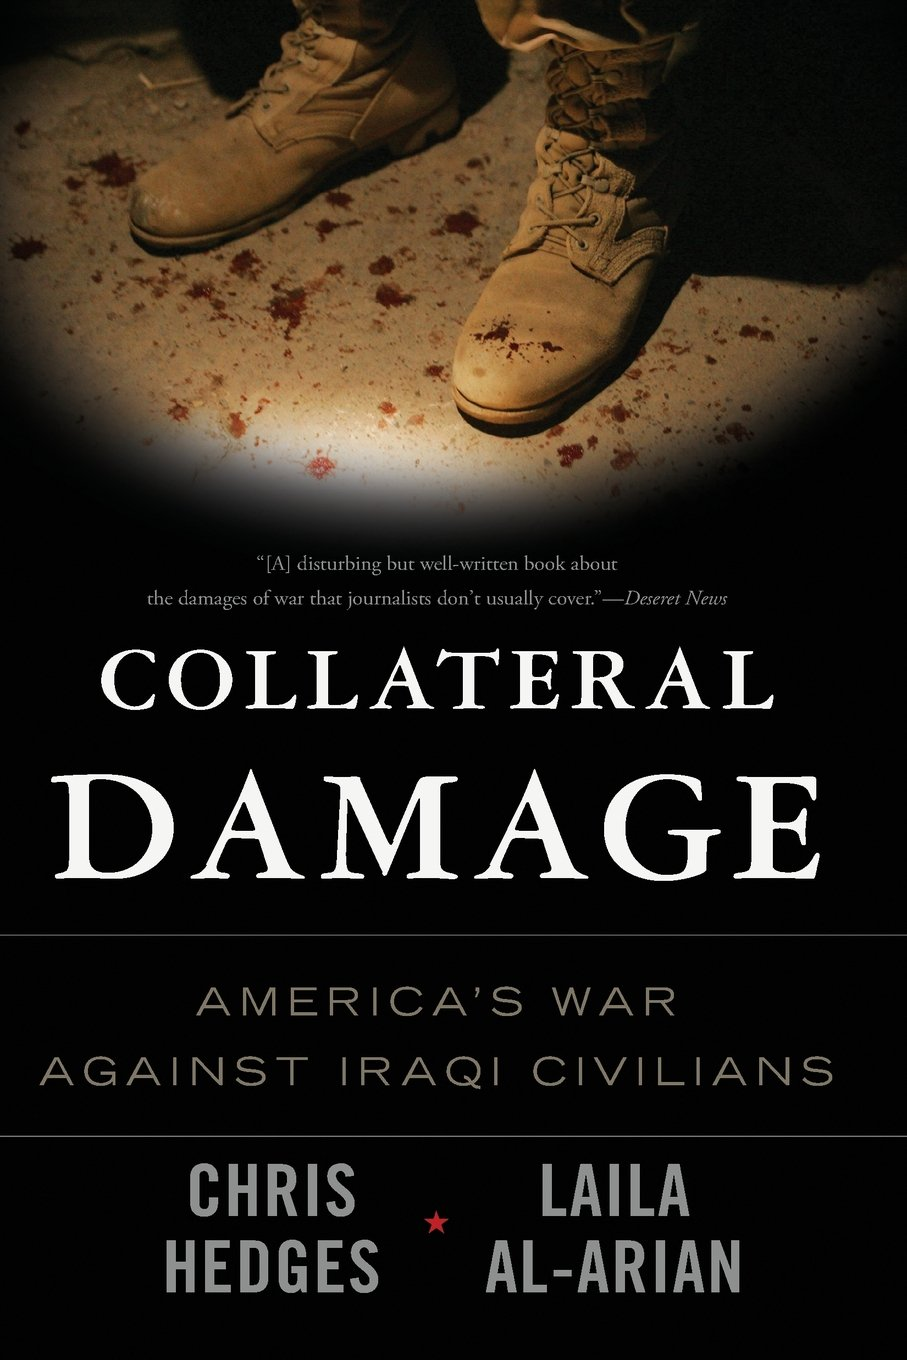 Collateral Damage: American's War Against Iraqi Civilians